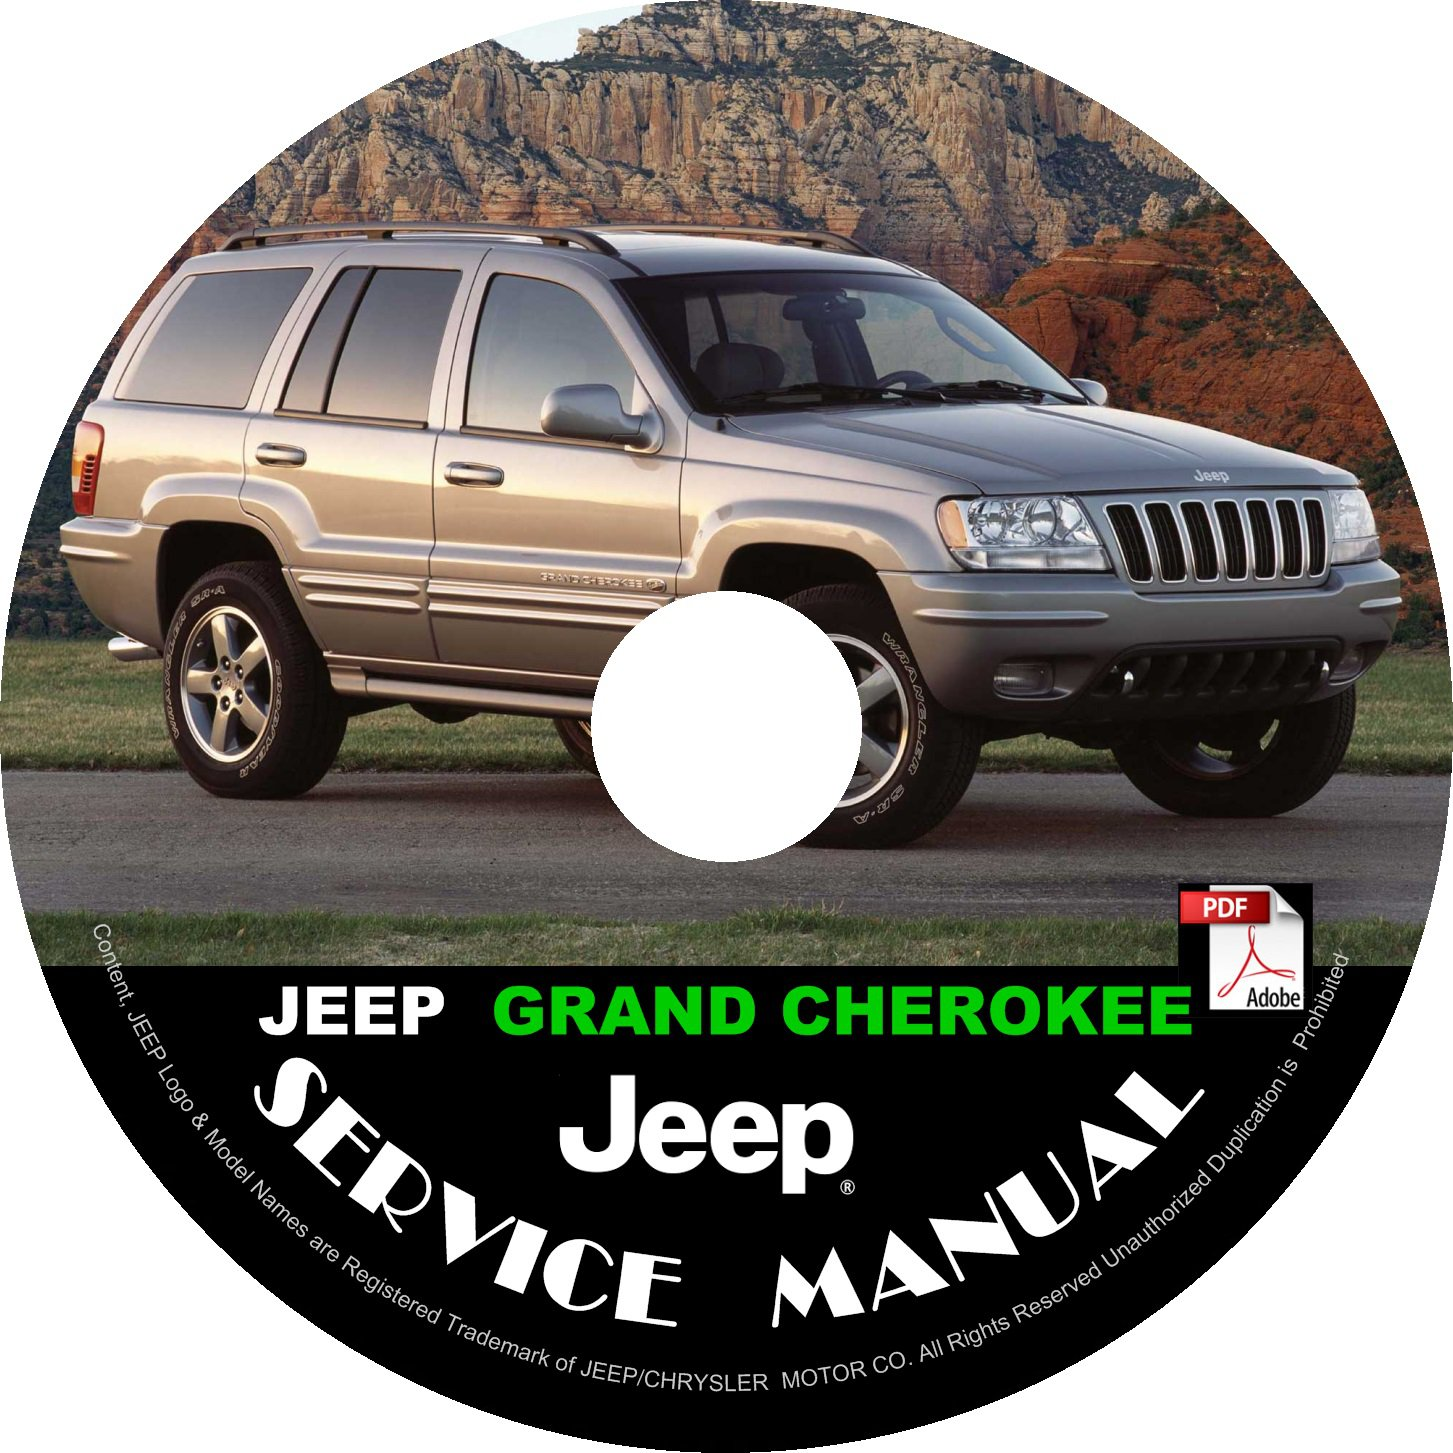 2002 Jeep Grand Cherokee Factory Service Repair Shop Manual on CD Fix Repair Rebuilt '02 Workshop